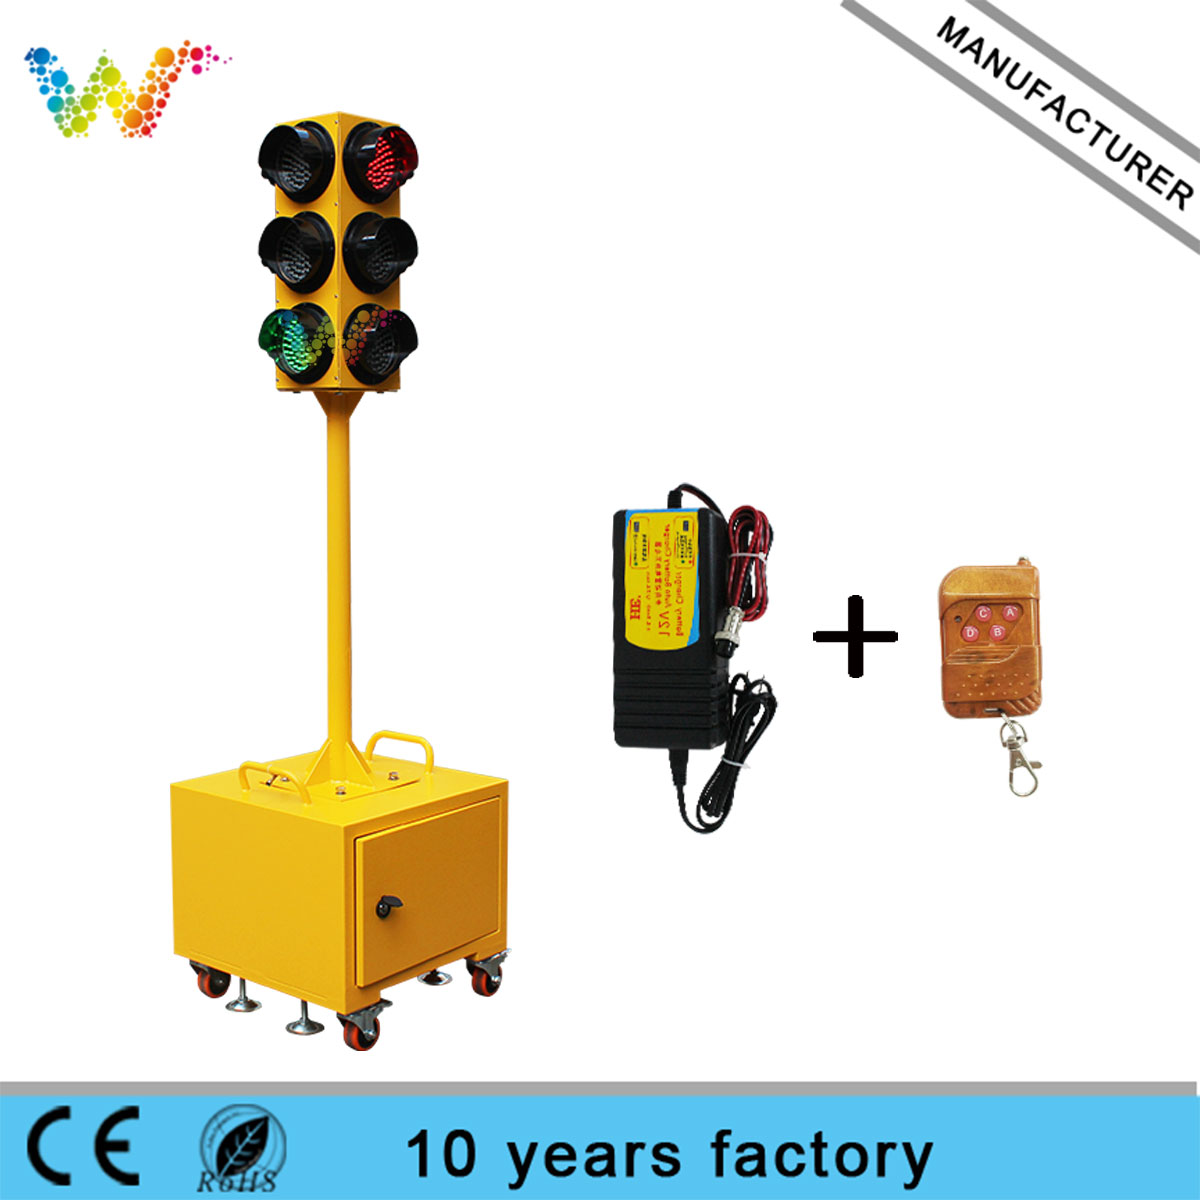 red amber green 125mm mobile traffic signal light